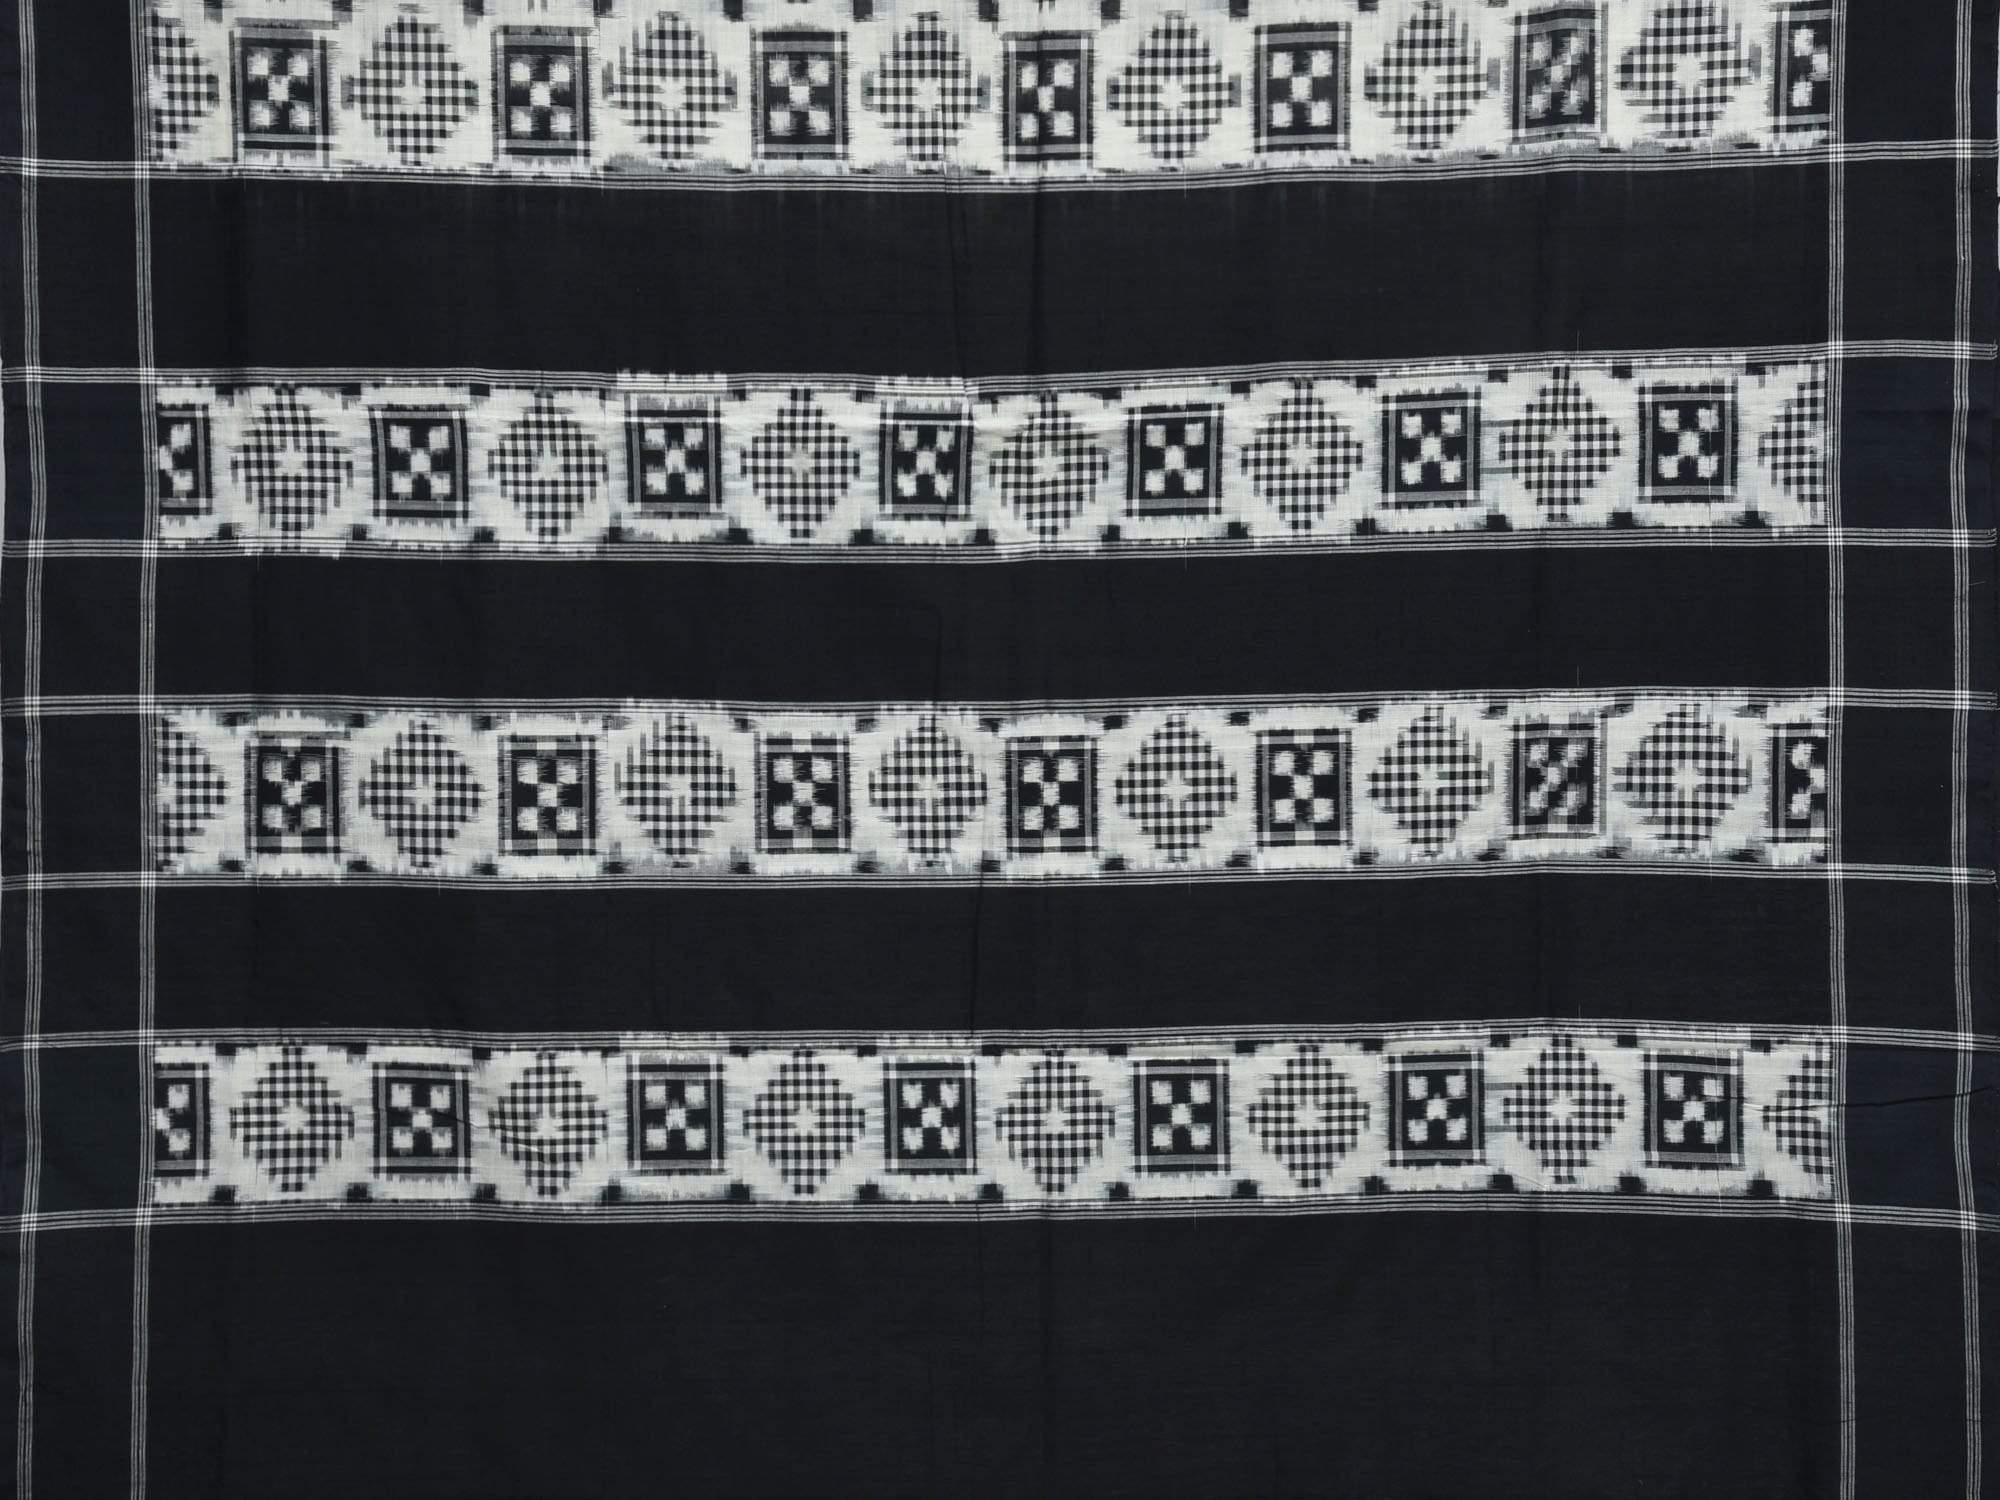 White and Black Pochampally Ikat Cotton Handloom Saree with Telia Design i0506